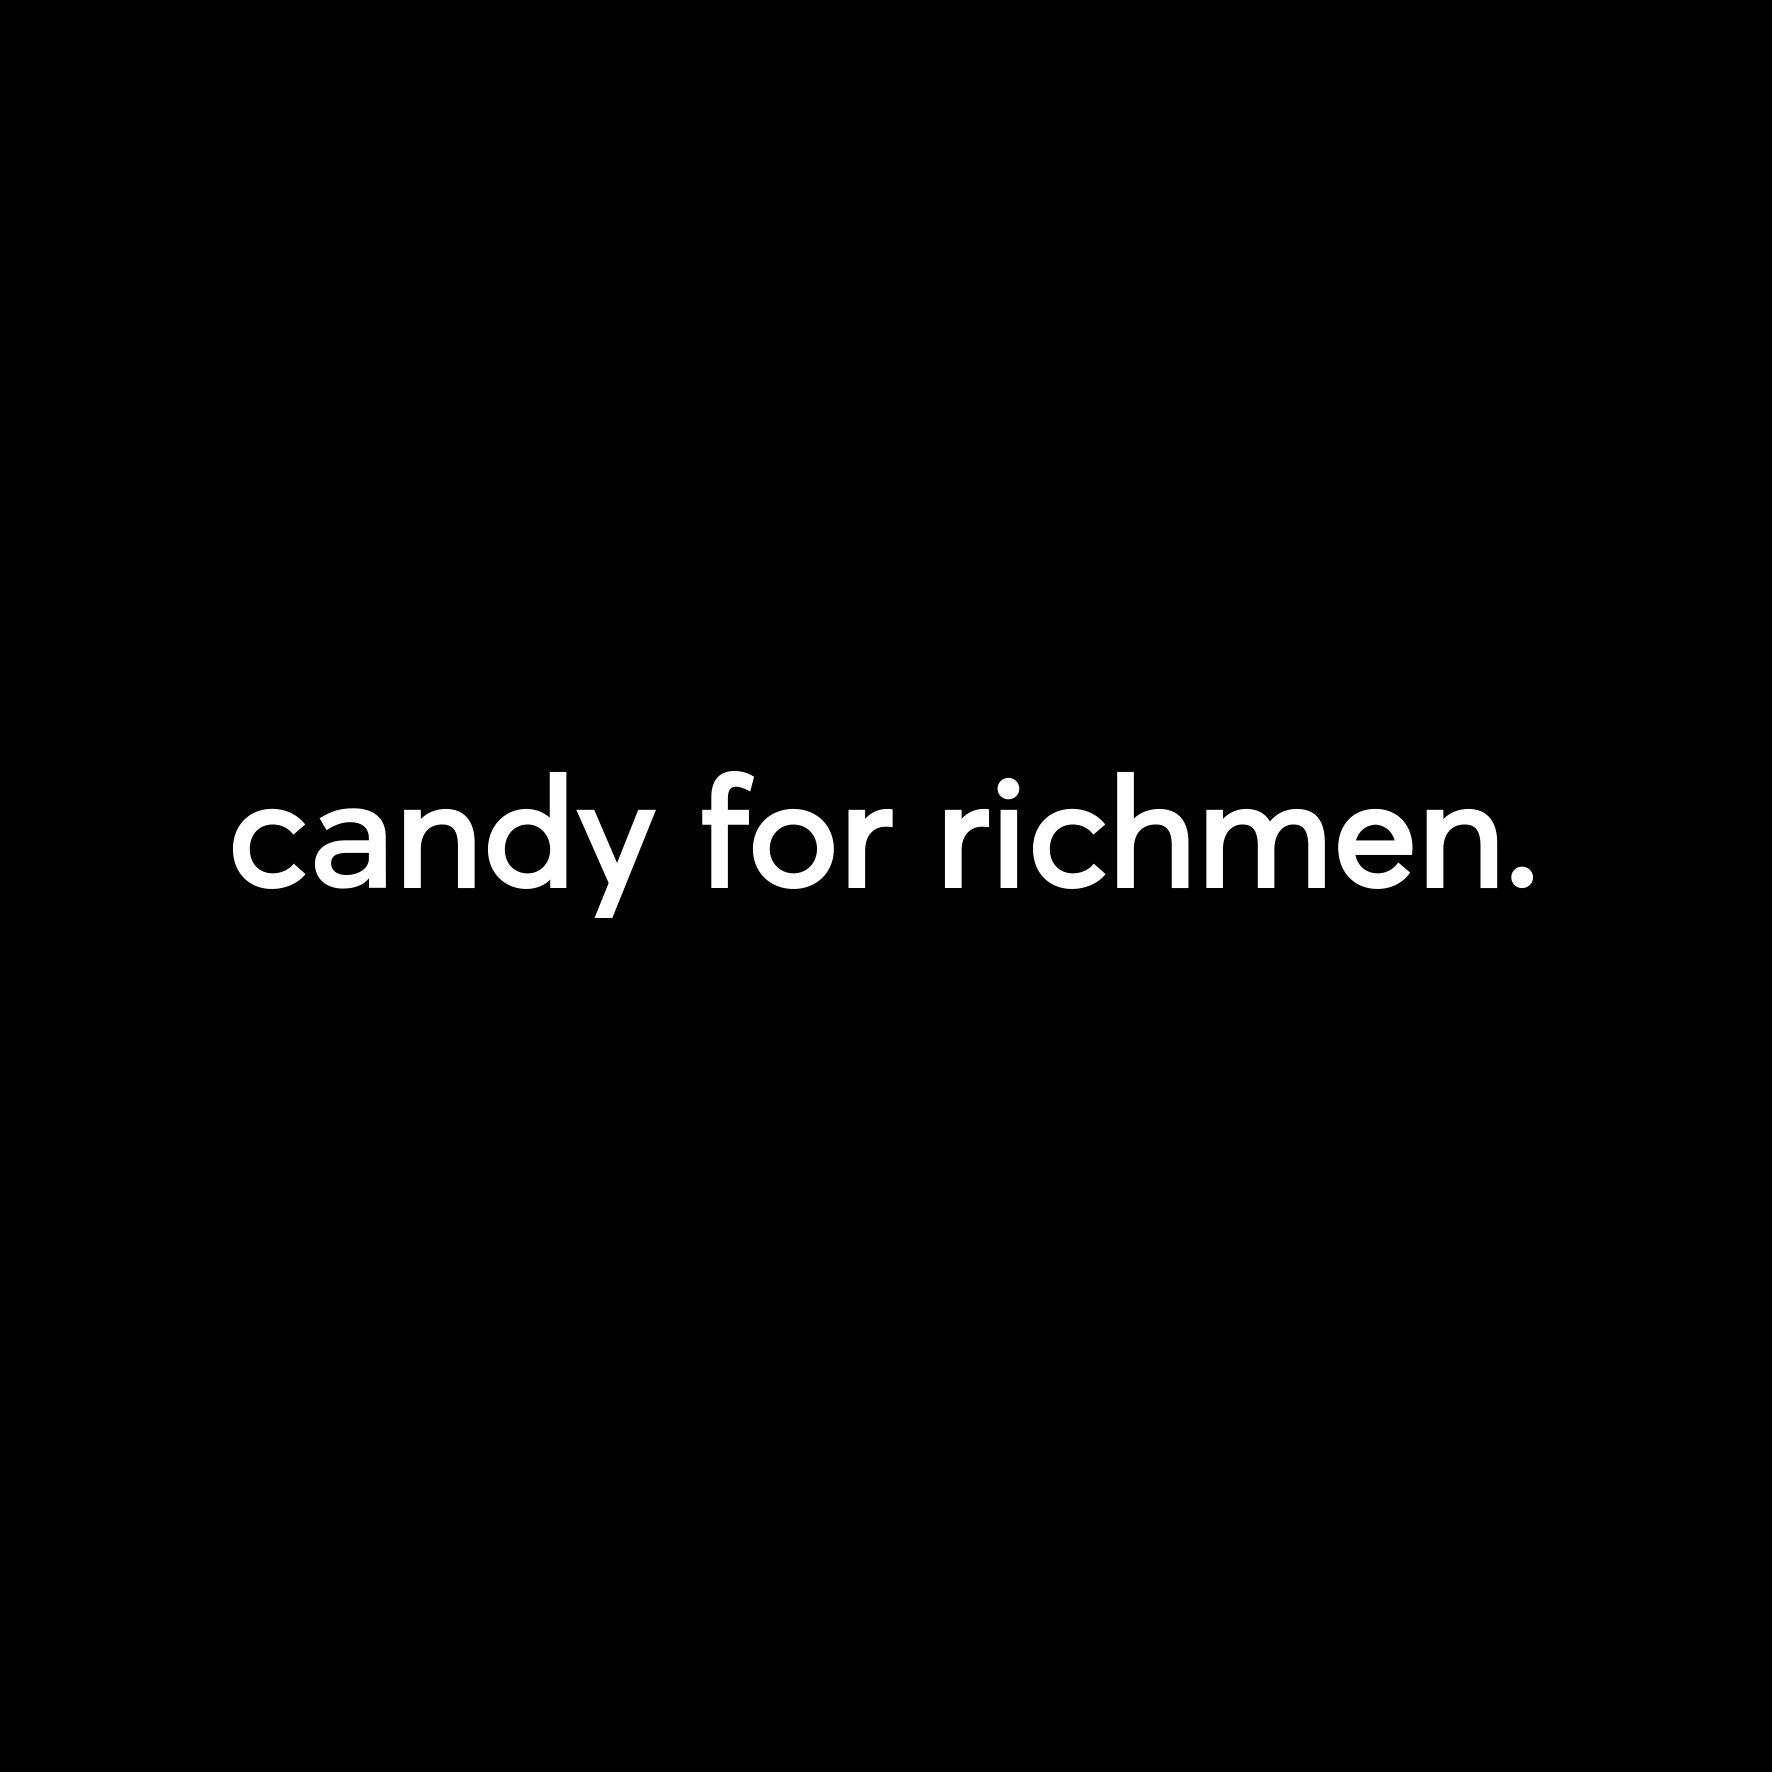 CANDY FOR RICHMEN